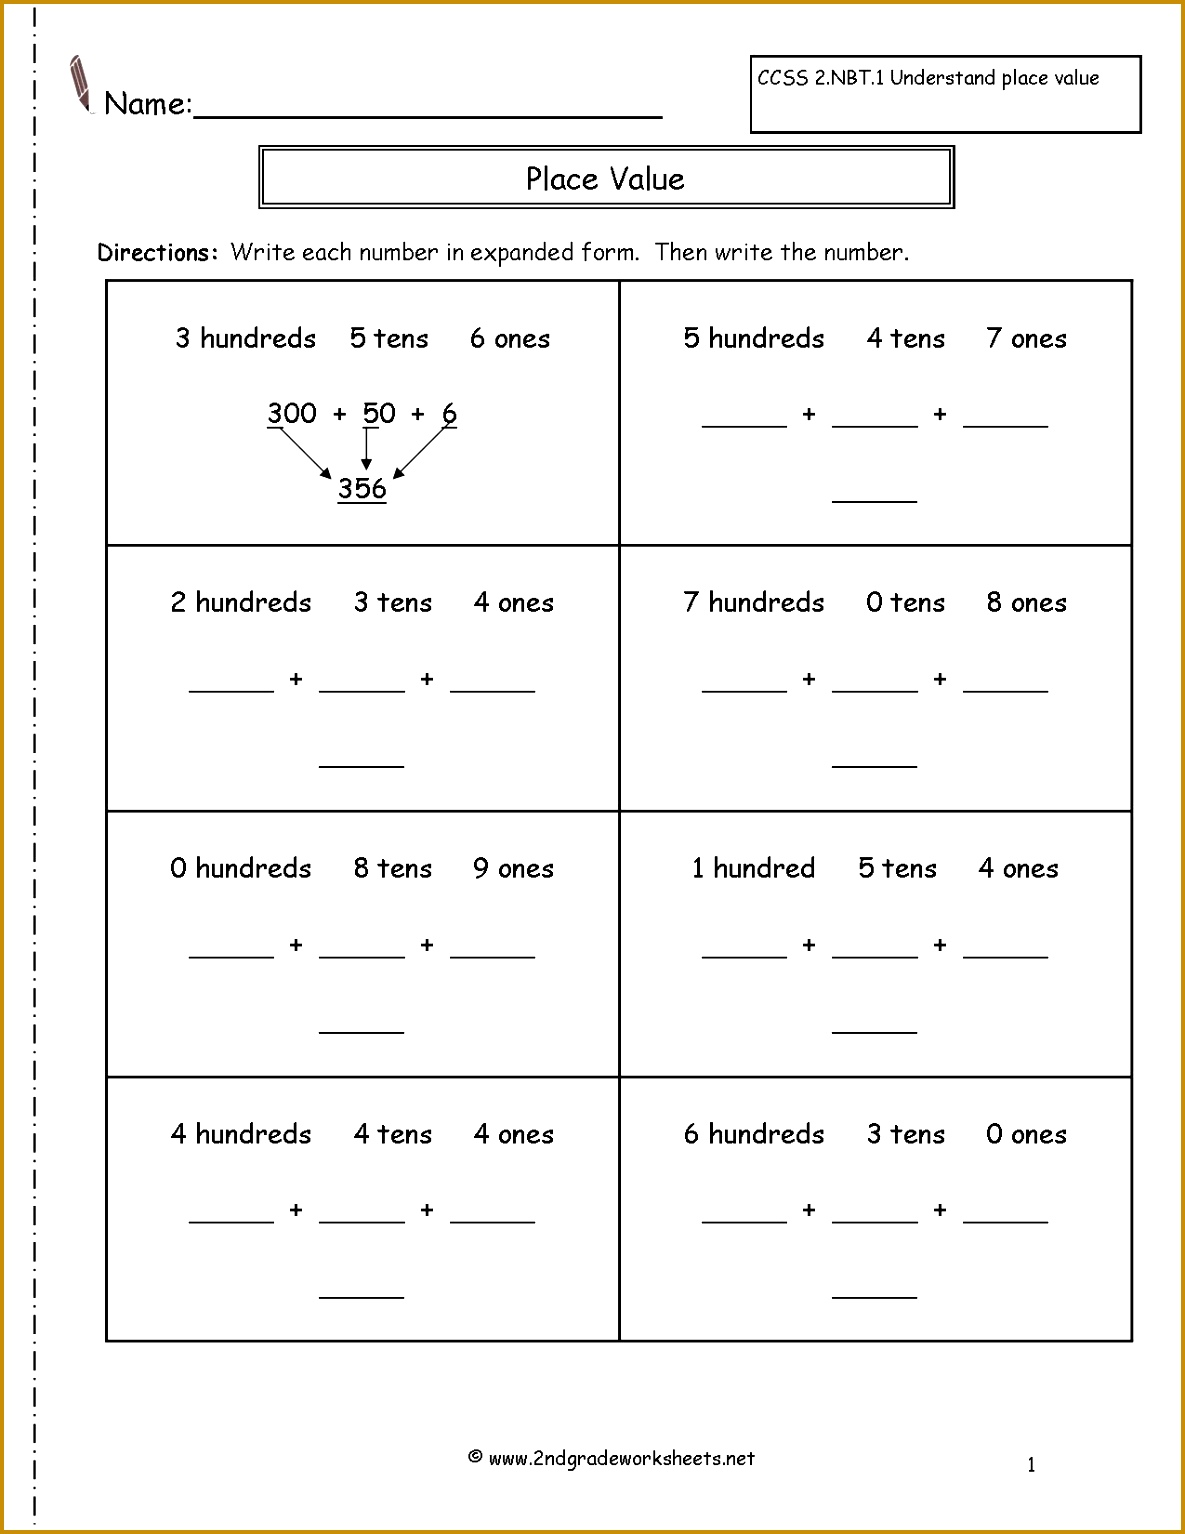 4 Greatest Common Factor Worksheet